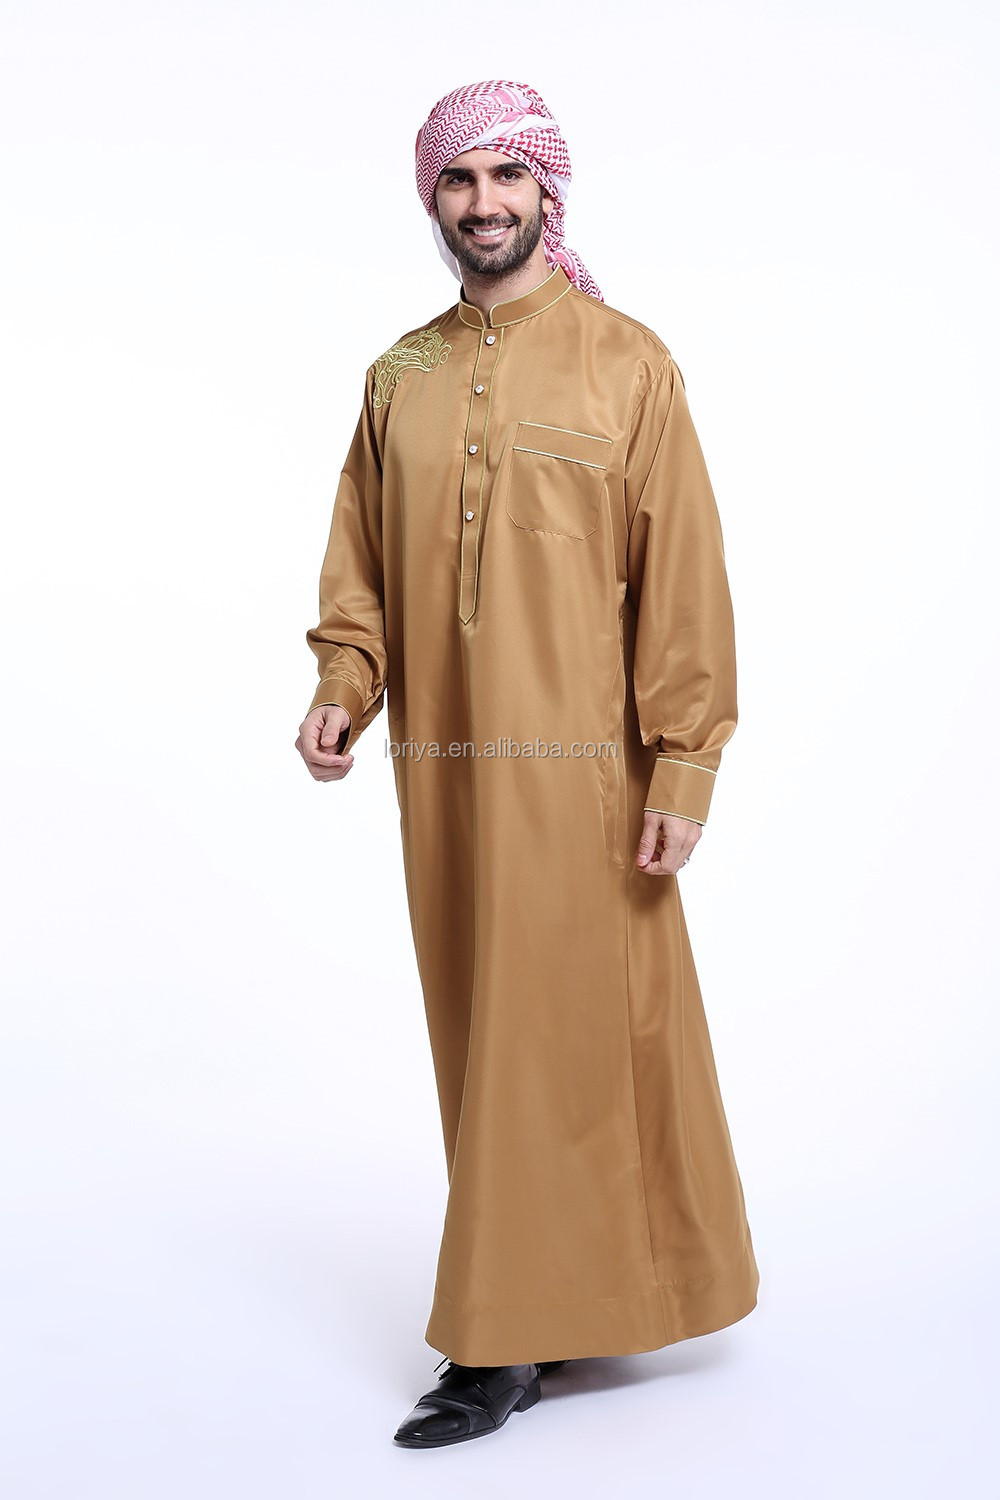 Traditional muslim dress white abaya modest clothing men abaya